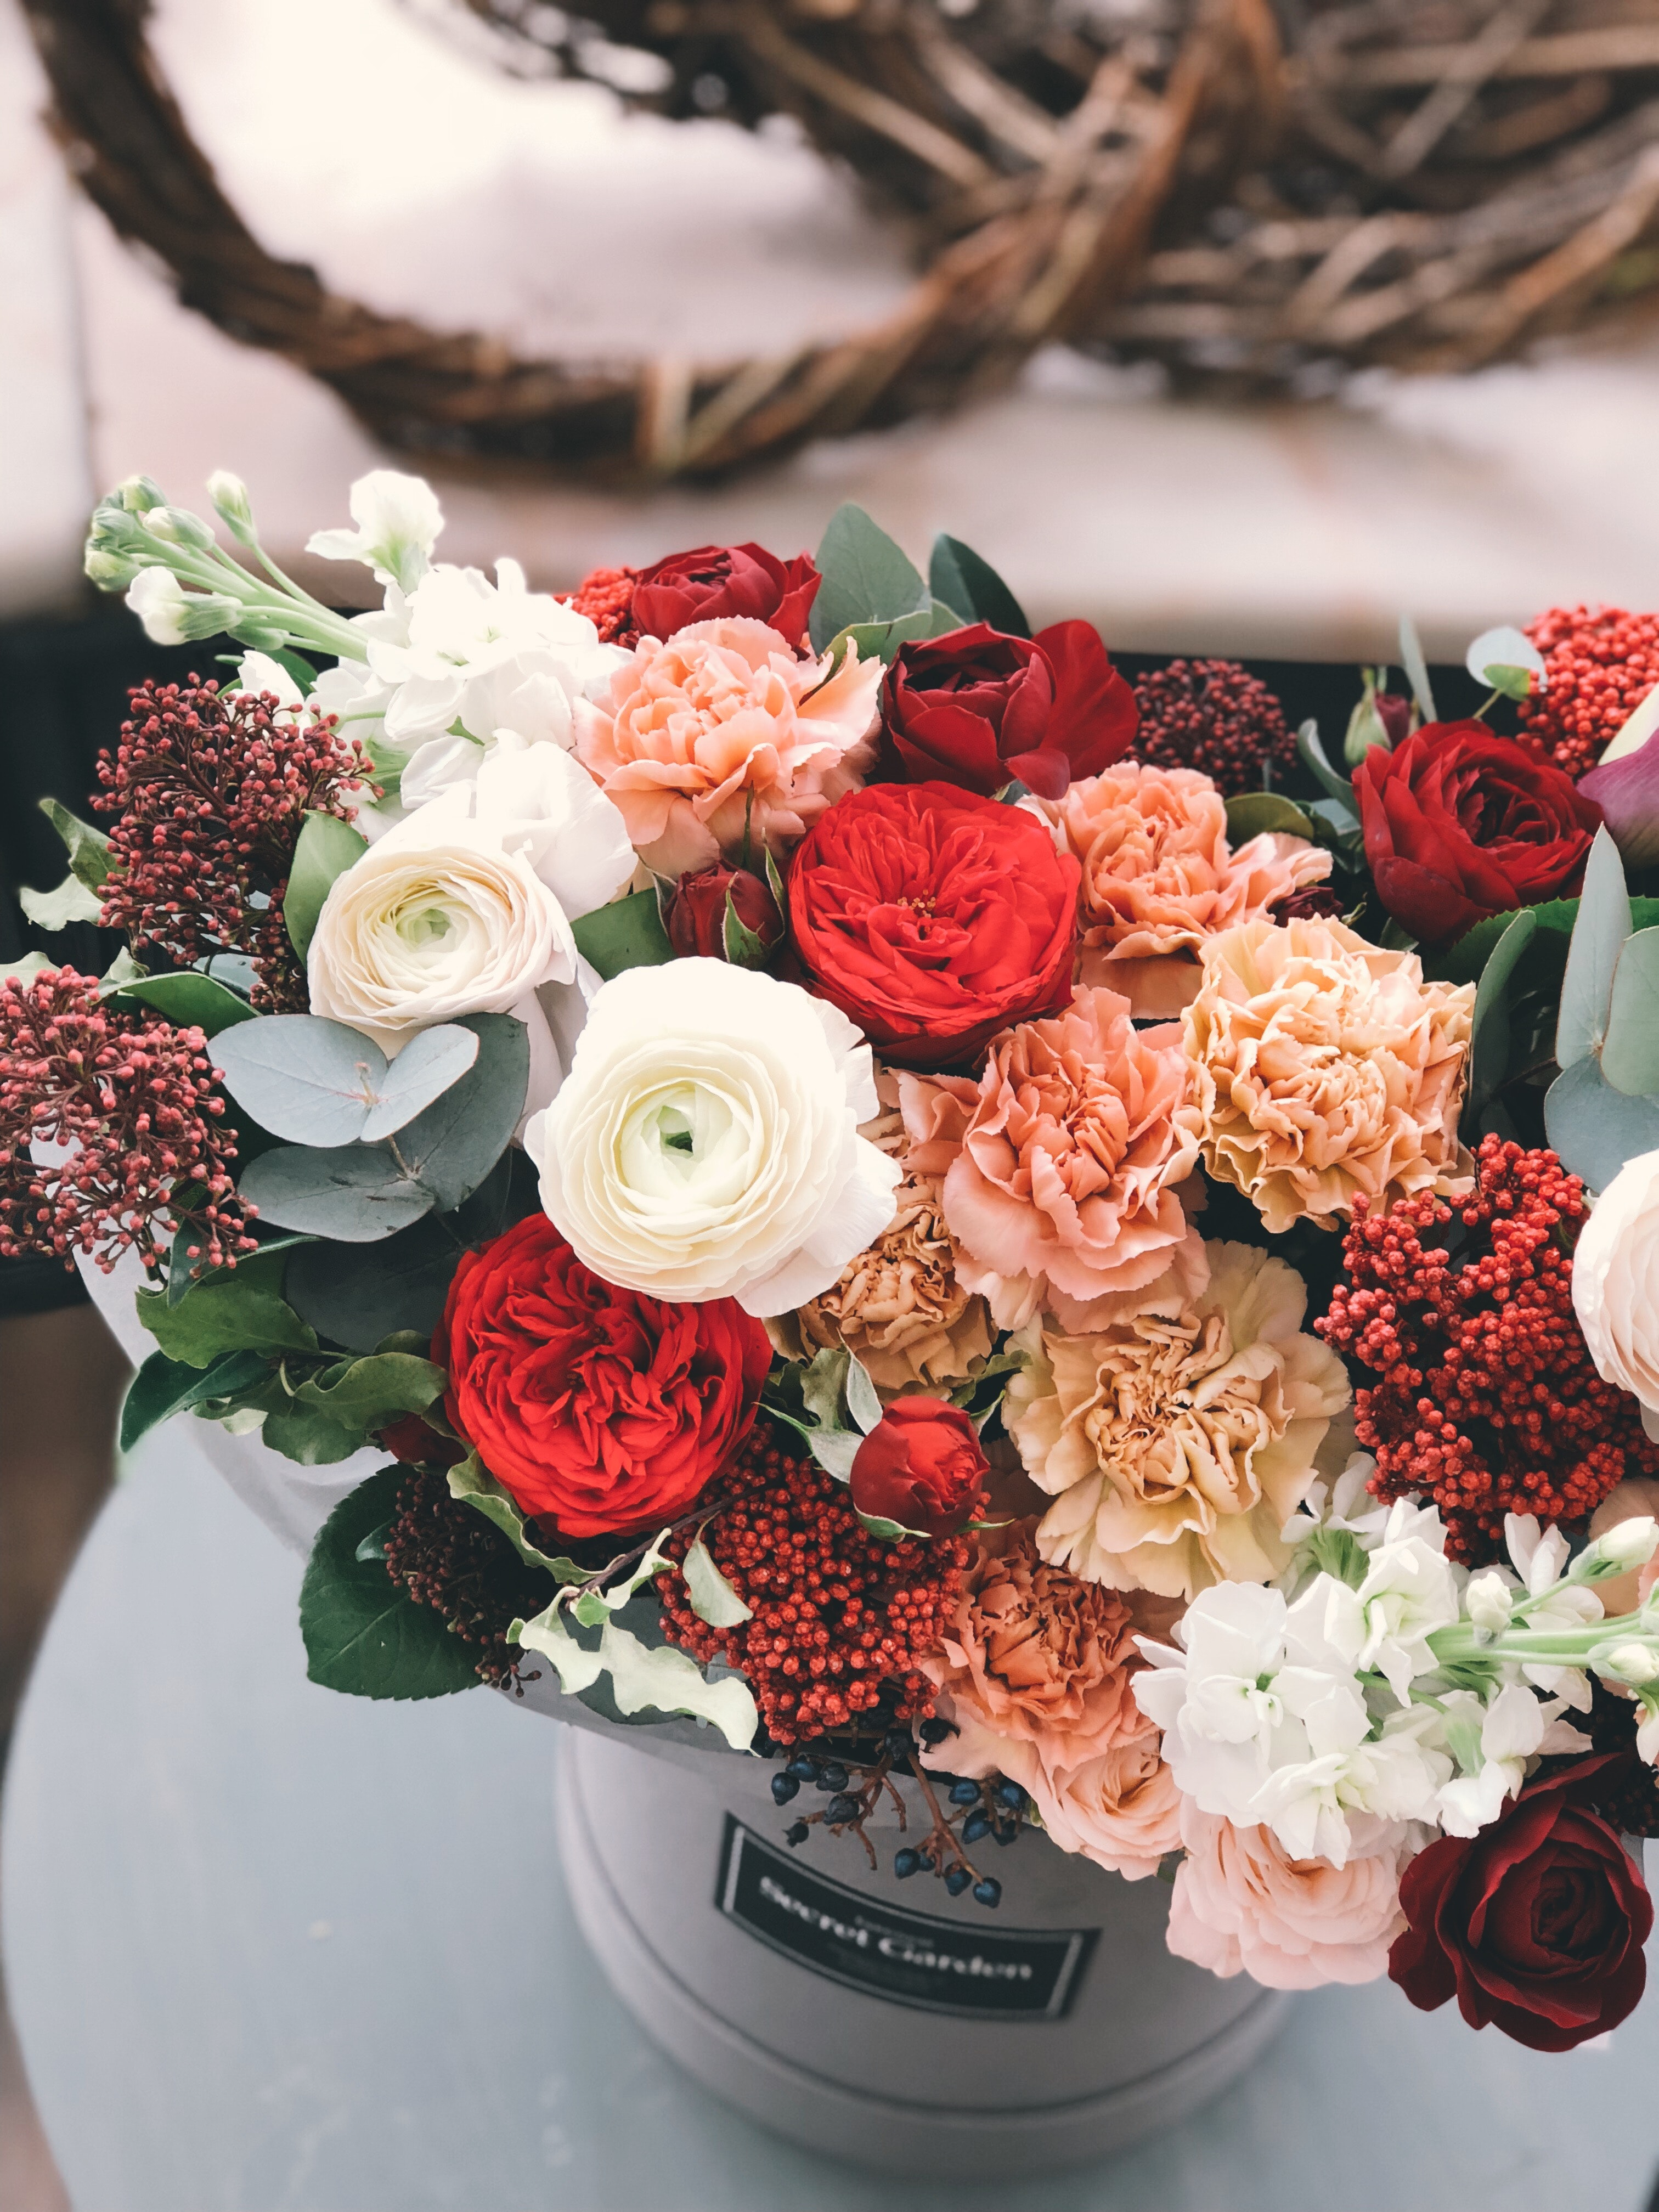 White, red, orange, and brown flowers photo